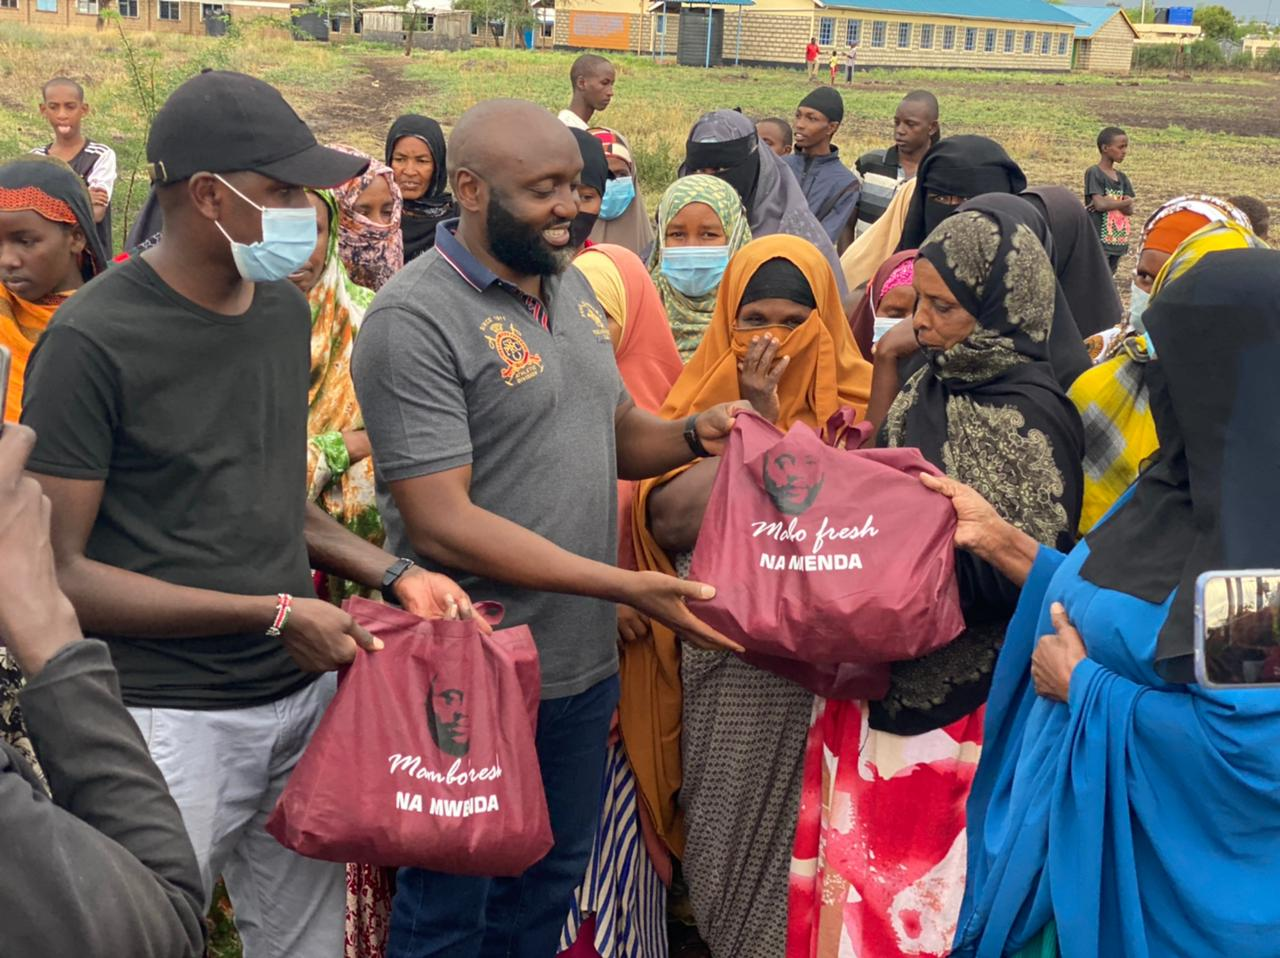 Philanthropist Mwenda Thuranira puts smiles on faces of Isiolo residents on Mother's Day